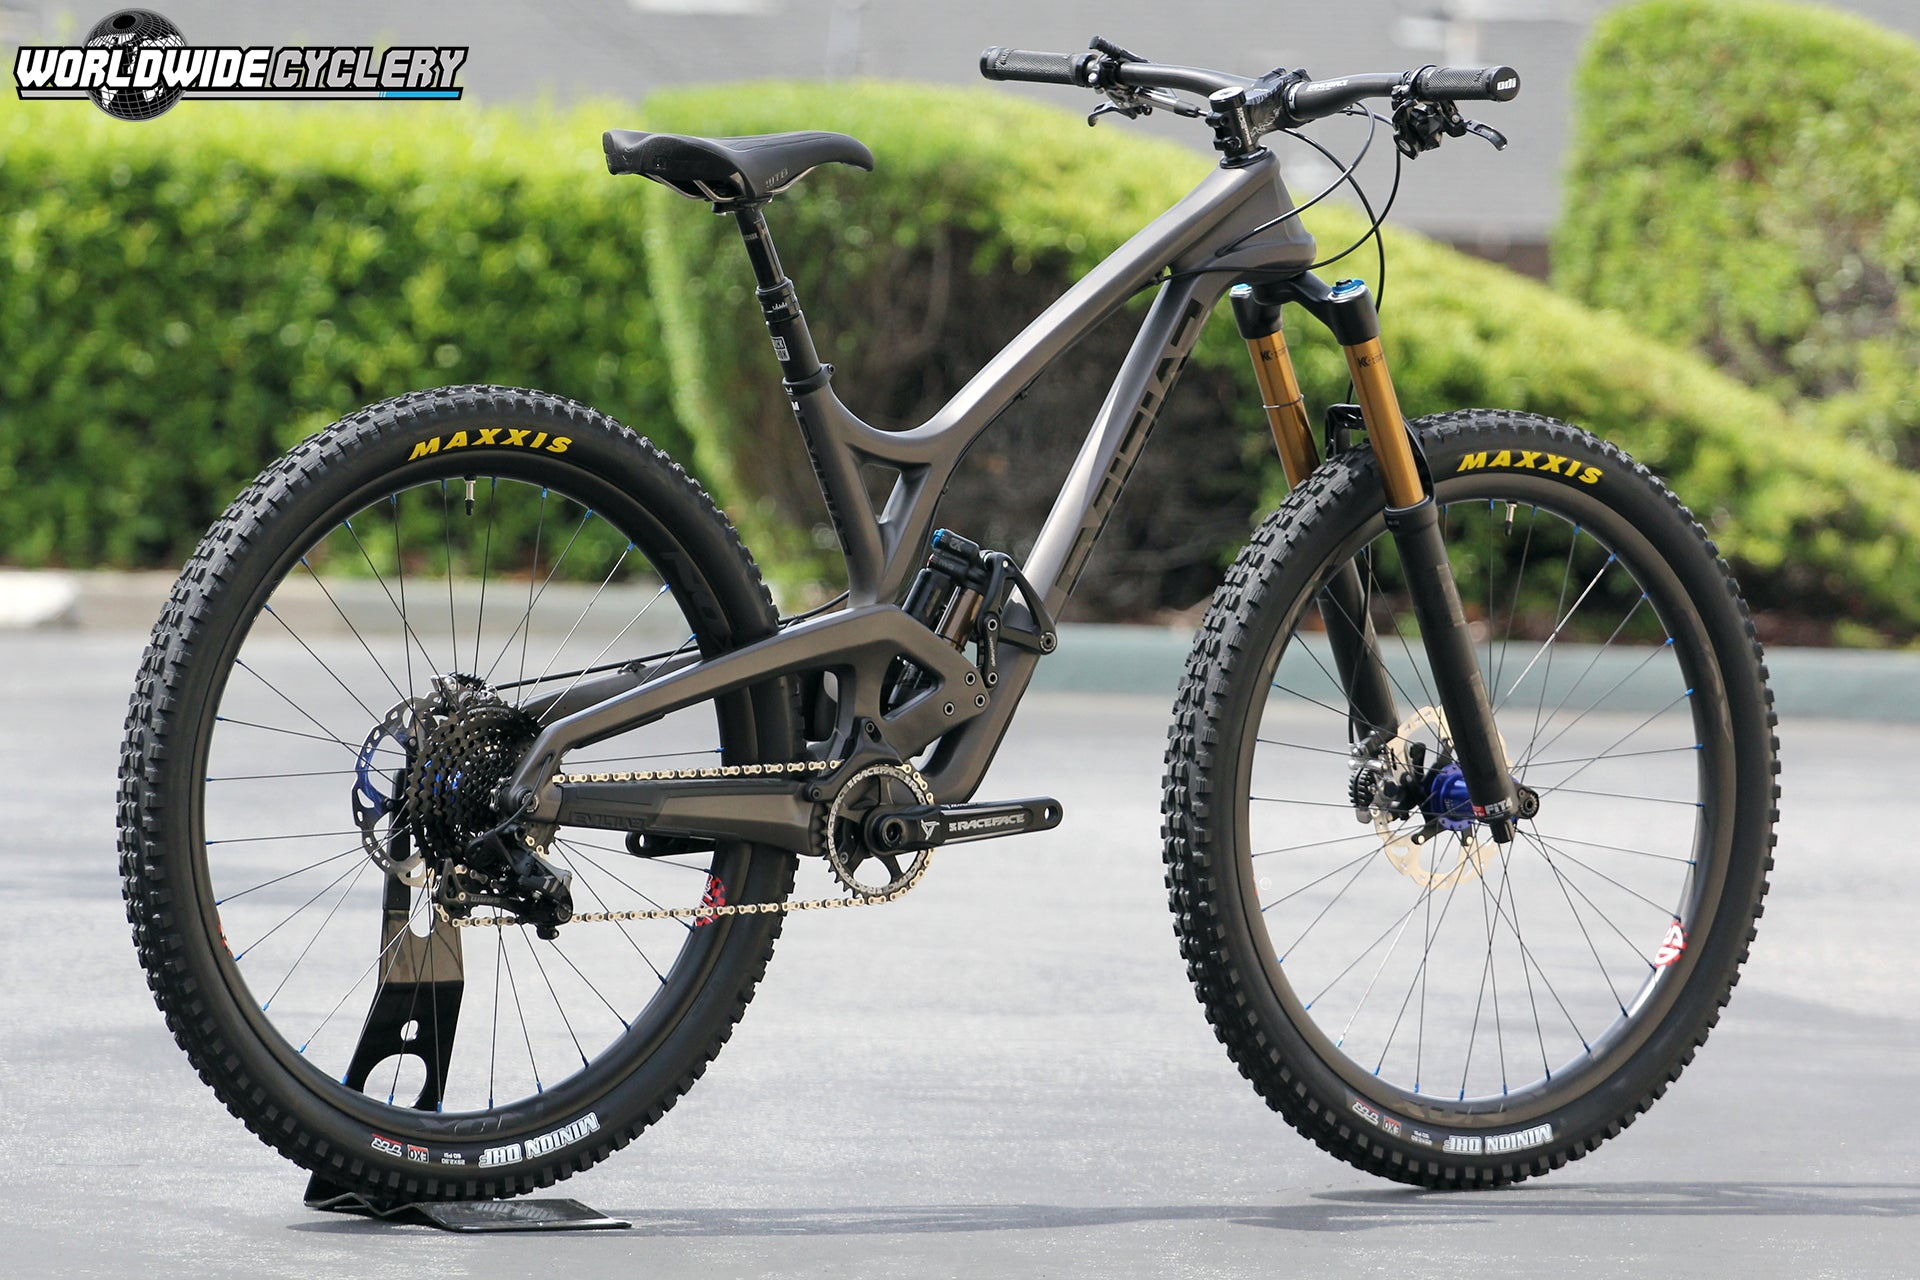 Evil The Wreckoning Custom Build - Worldwide Cyclery